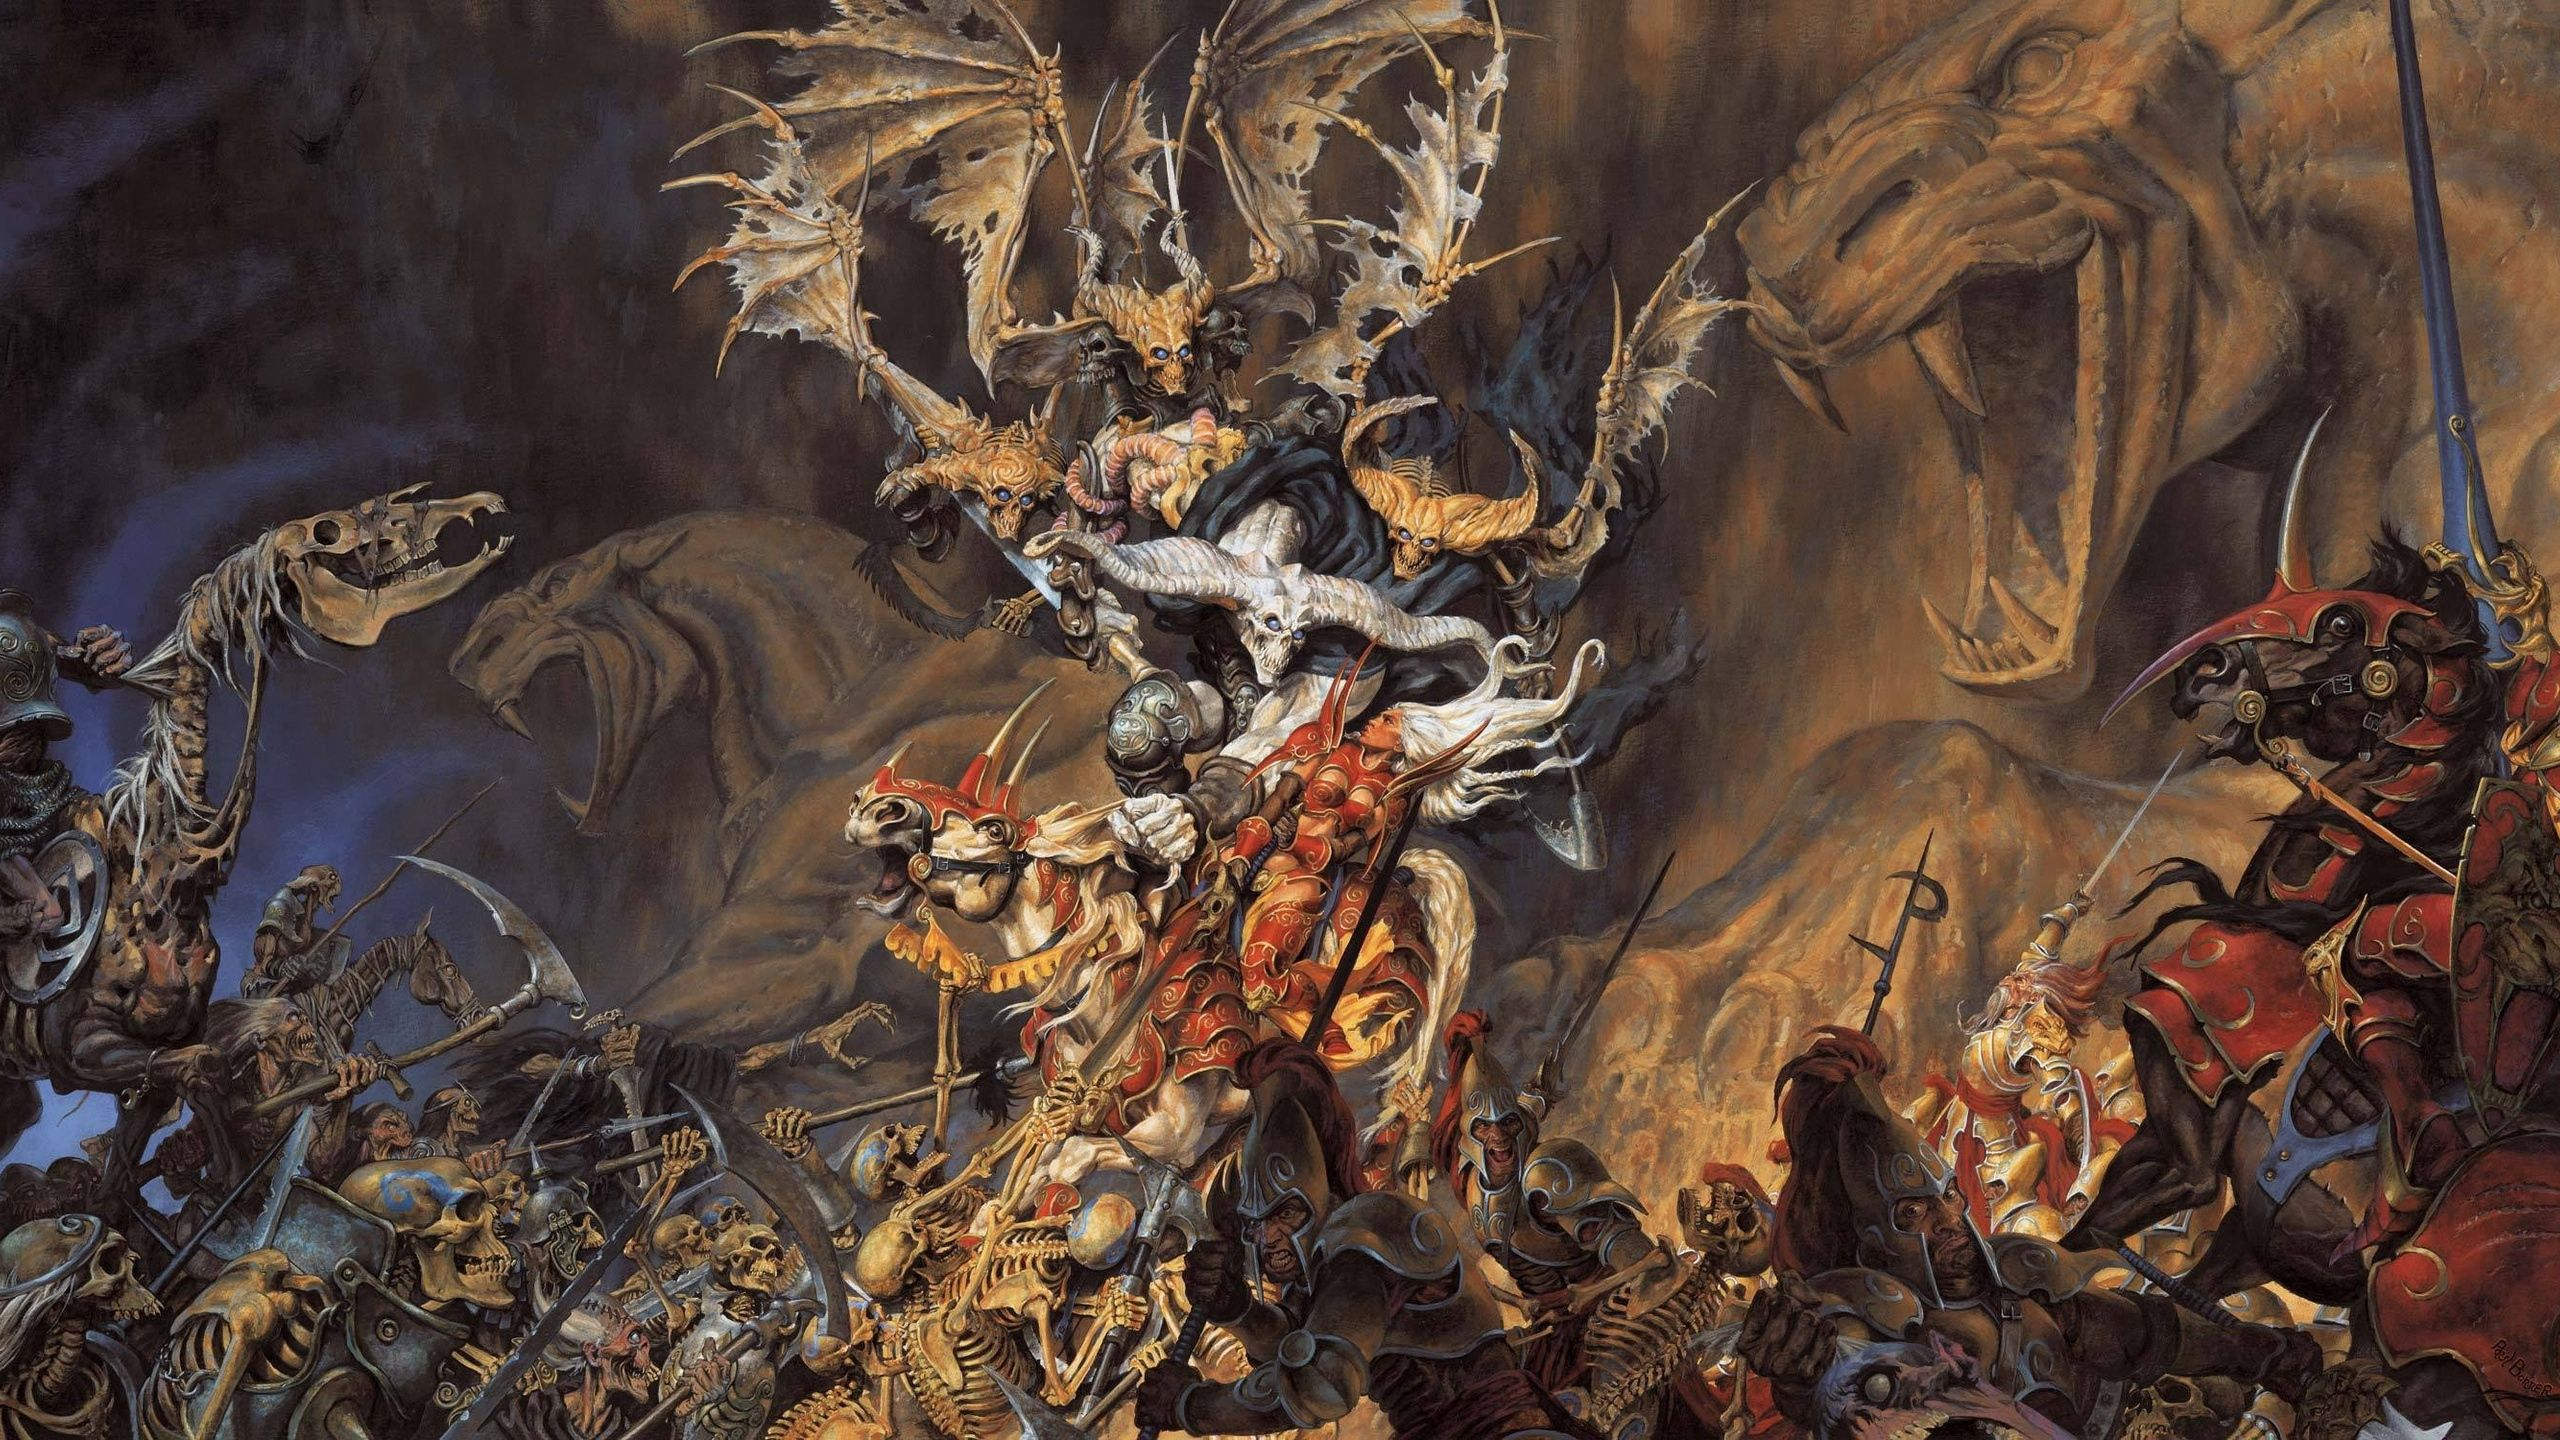 87211 download wallpaper Fantasy, Horses, Skeletons, Battle, Demon, Warriors, Undead screensavers and pictures for free